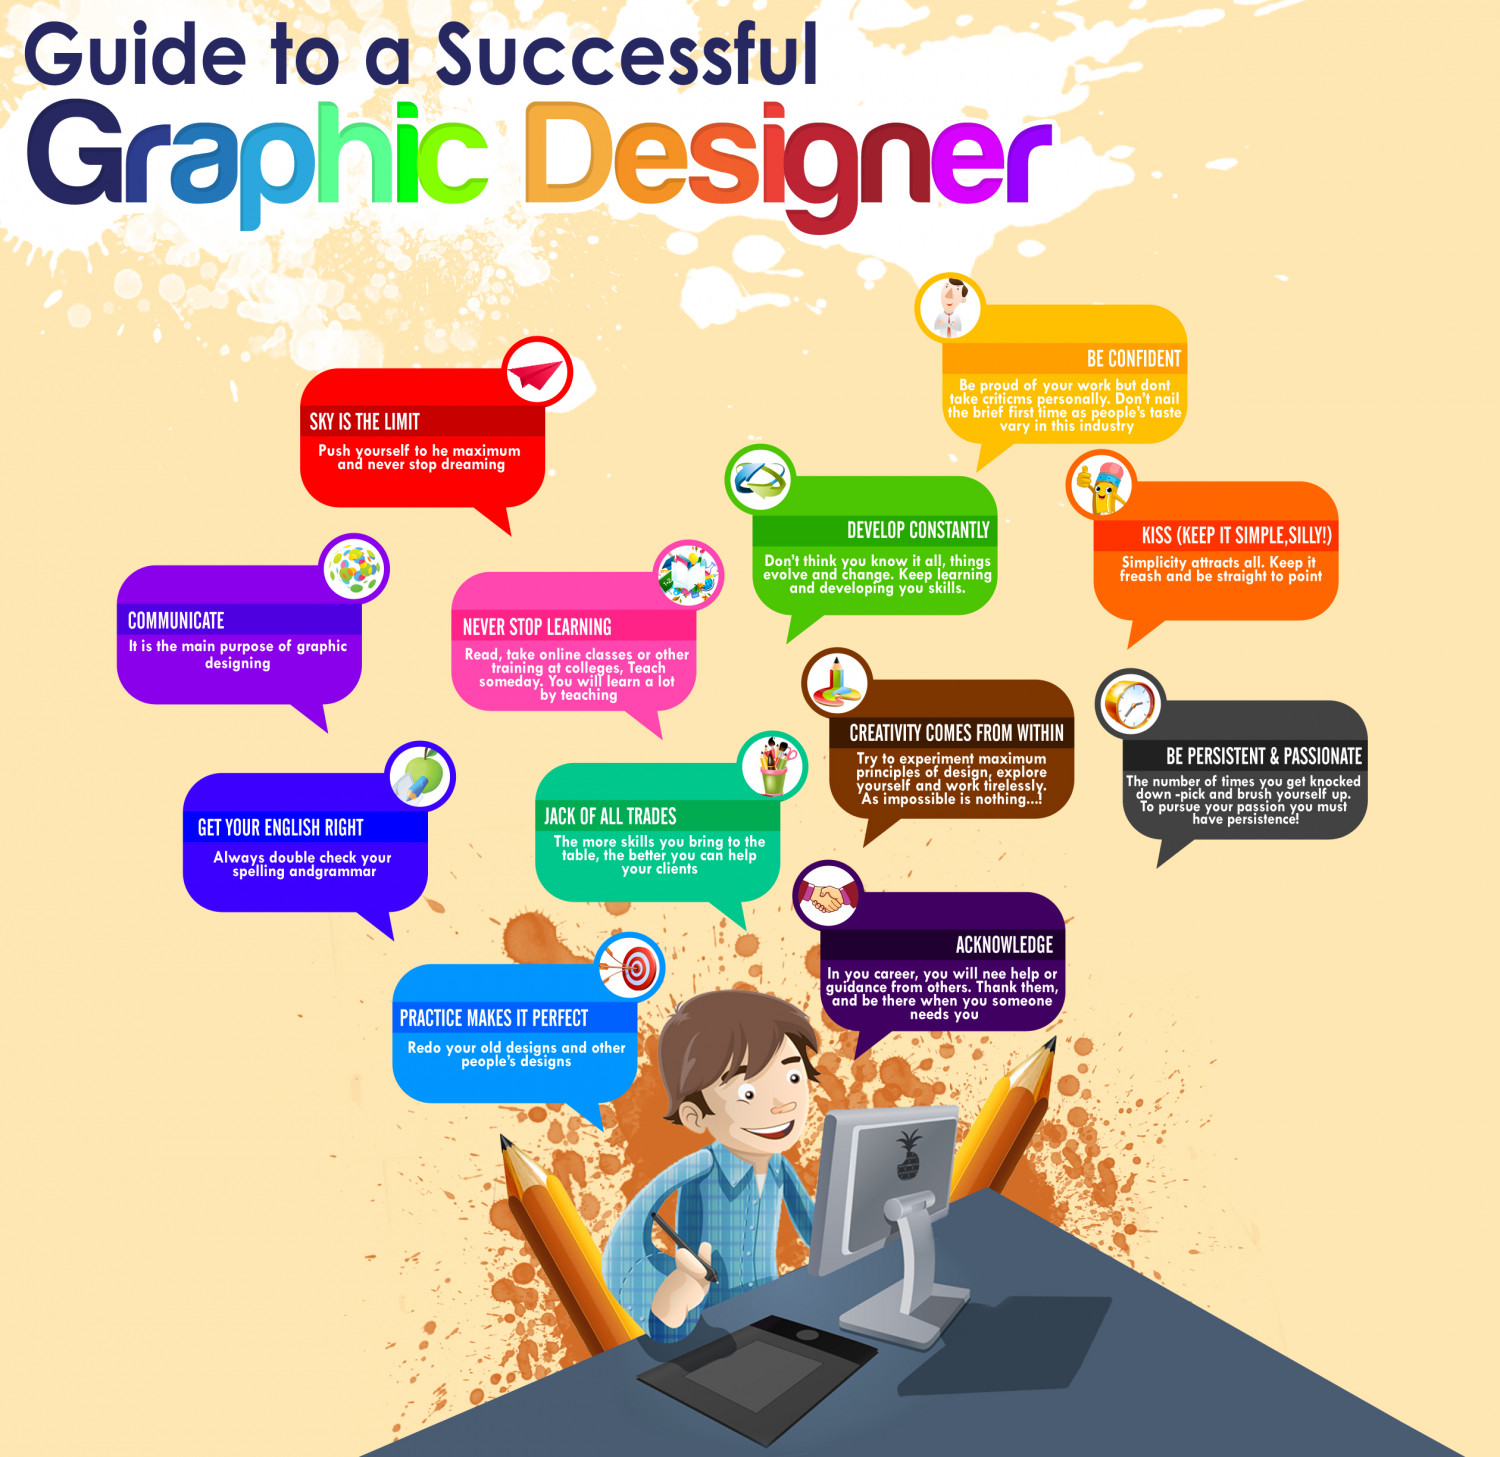 guide to a successful graphic designer visually